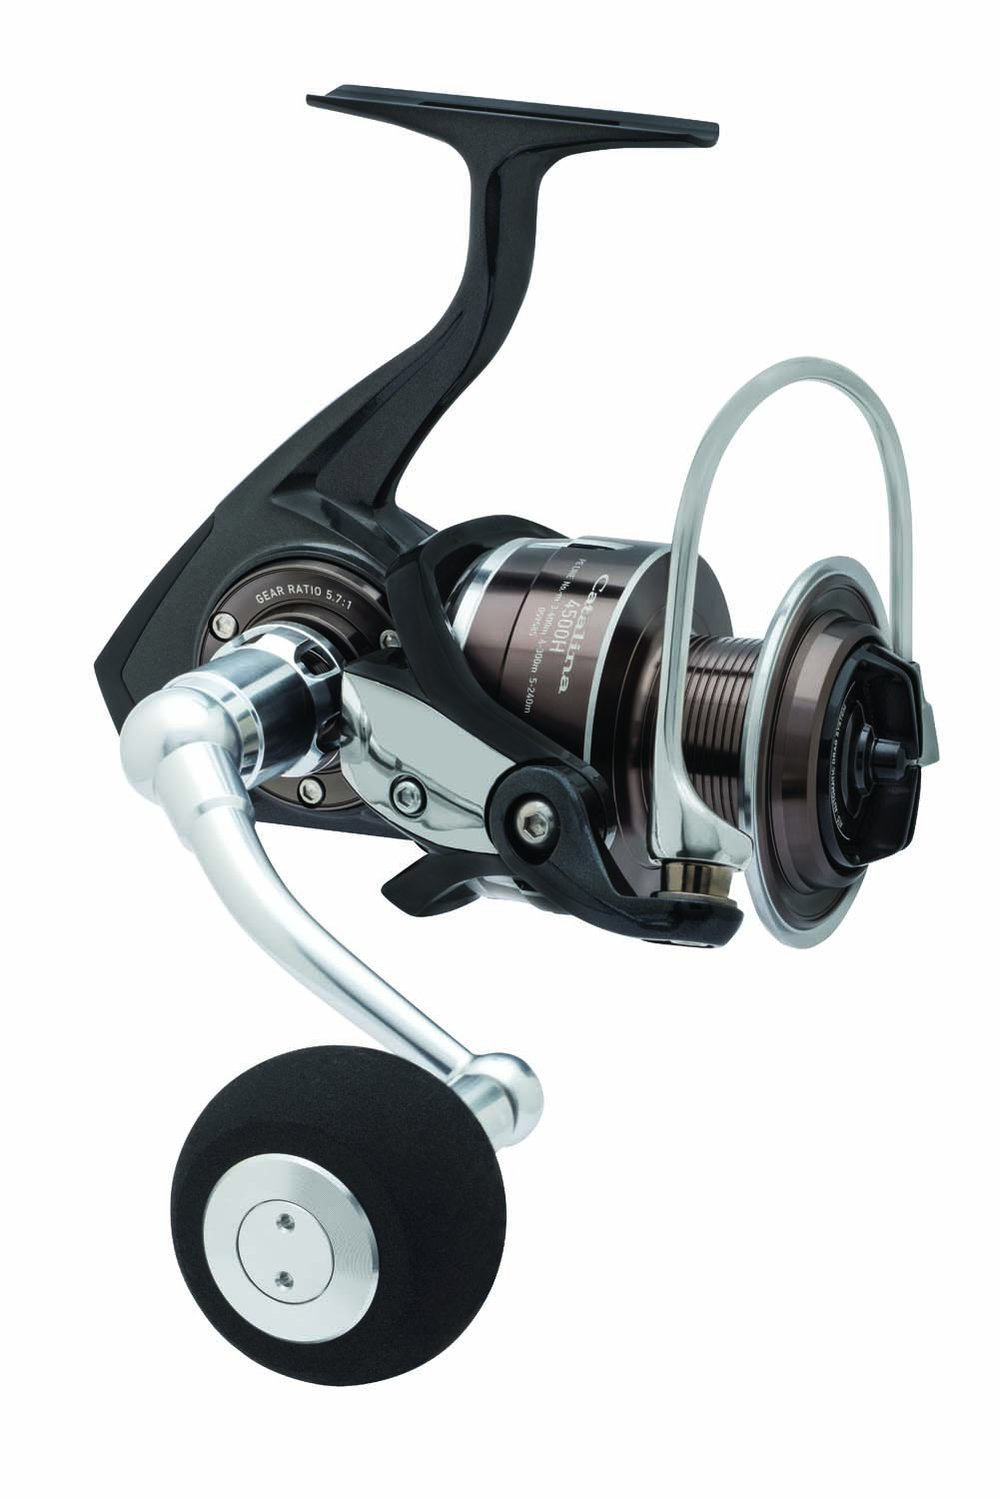 Daiwa 16 Catalina 5000H Reel